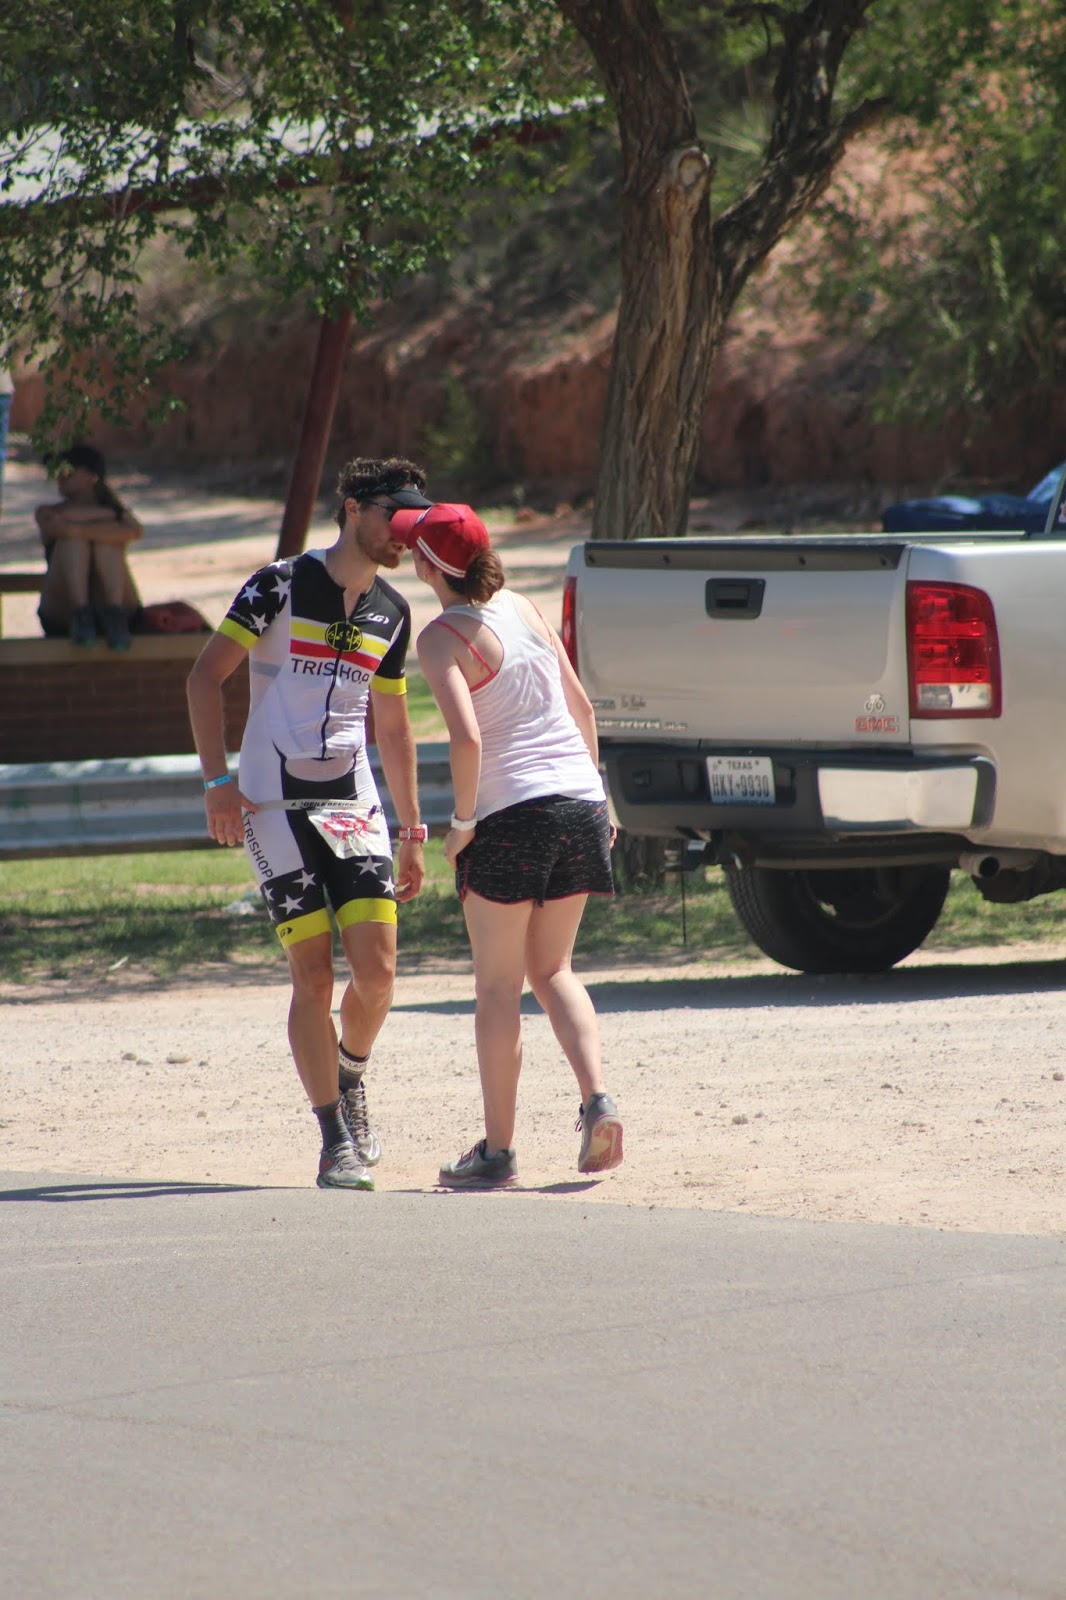 Coach_Terry_Wilson_Pursuit_of_The_Perfect_Race_IRONMAN_Buffalo_Springs_Lake_70.3_Avram_Carter_Kisses.JPG